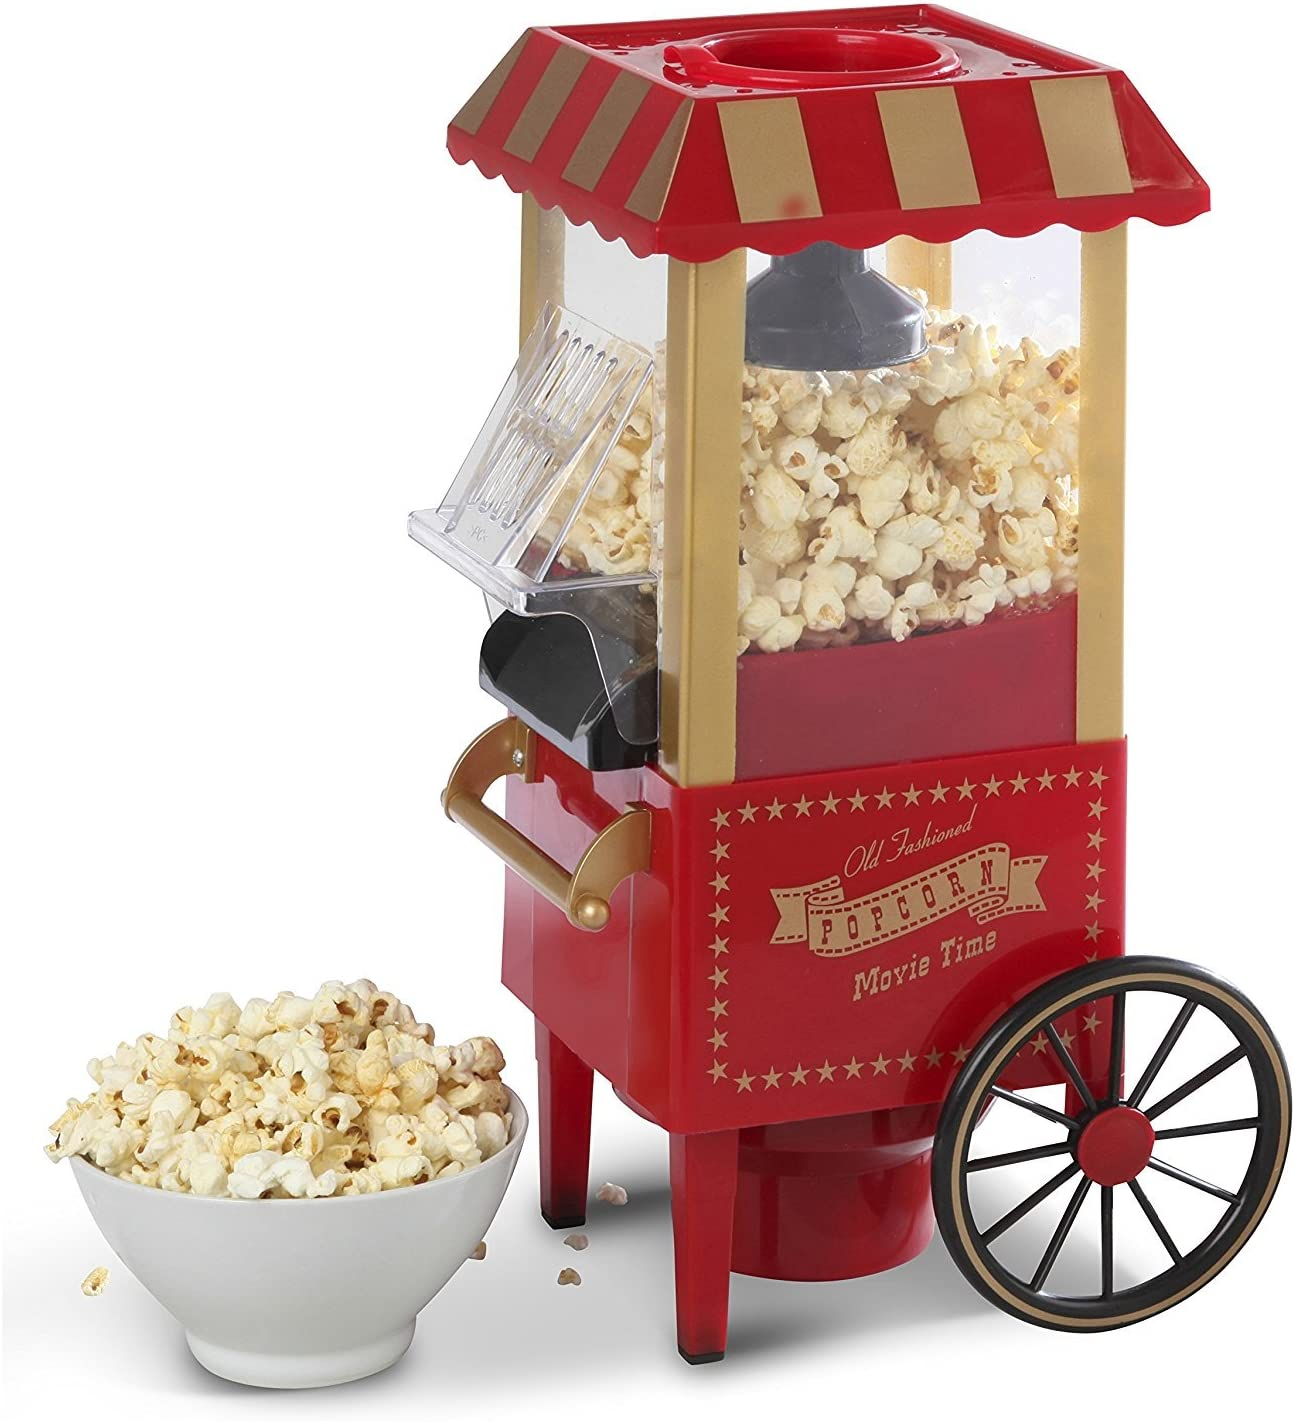 Top 7 Best Kids Popcorn Machine (2020 Reviews & Buying Guide) 6